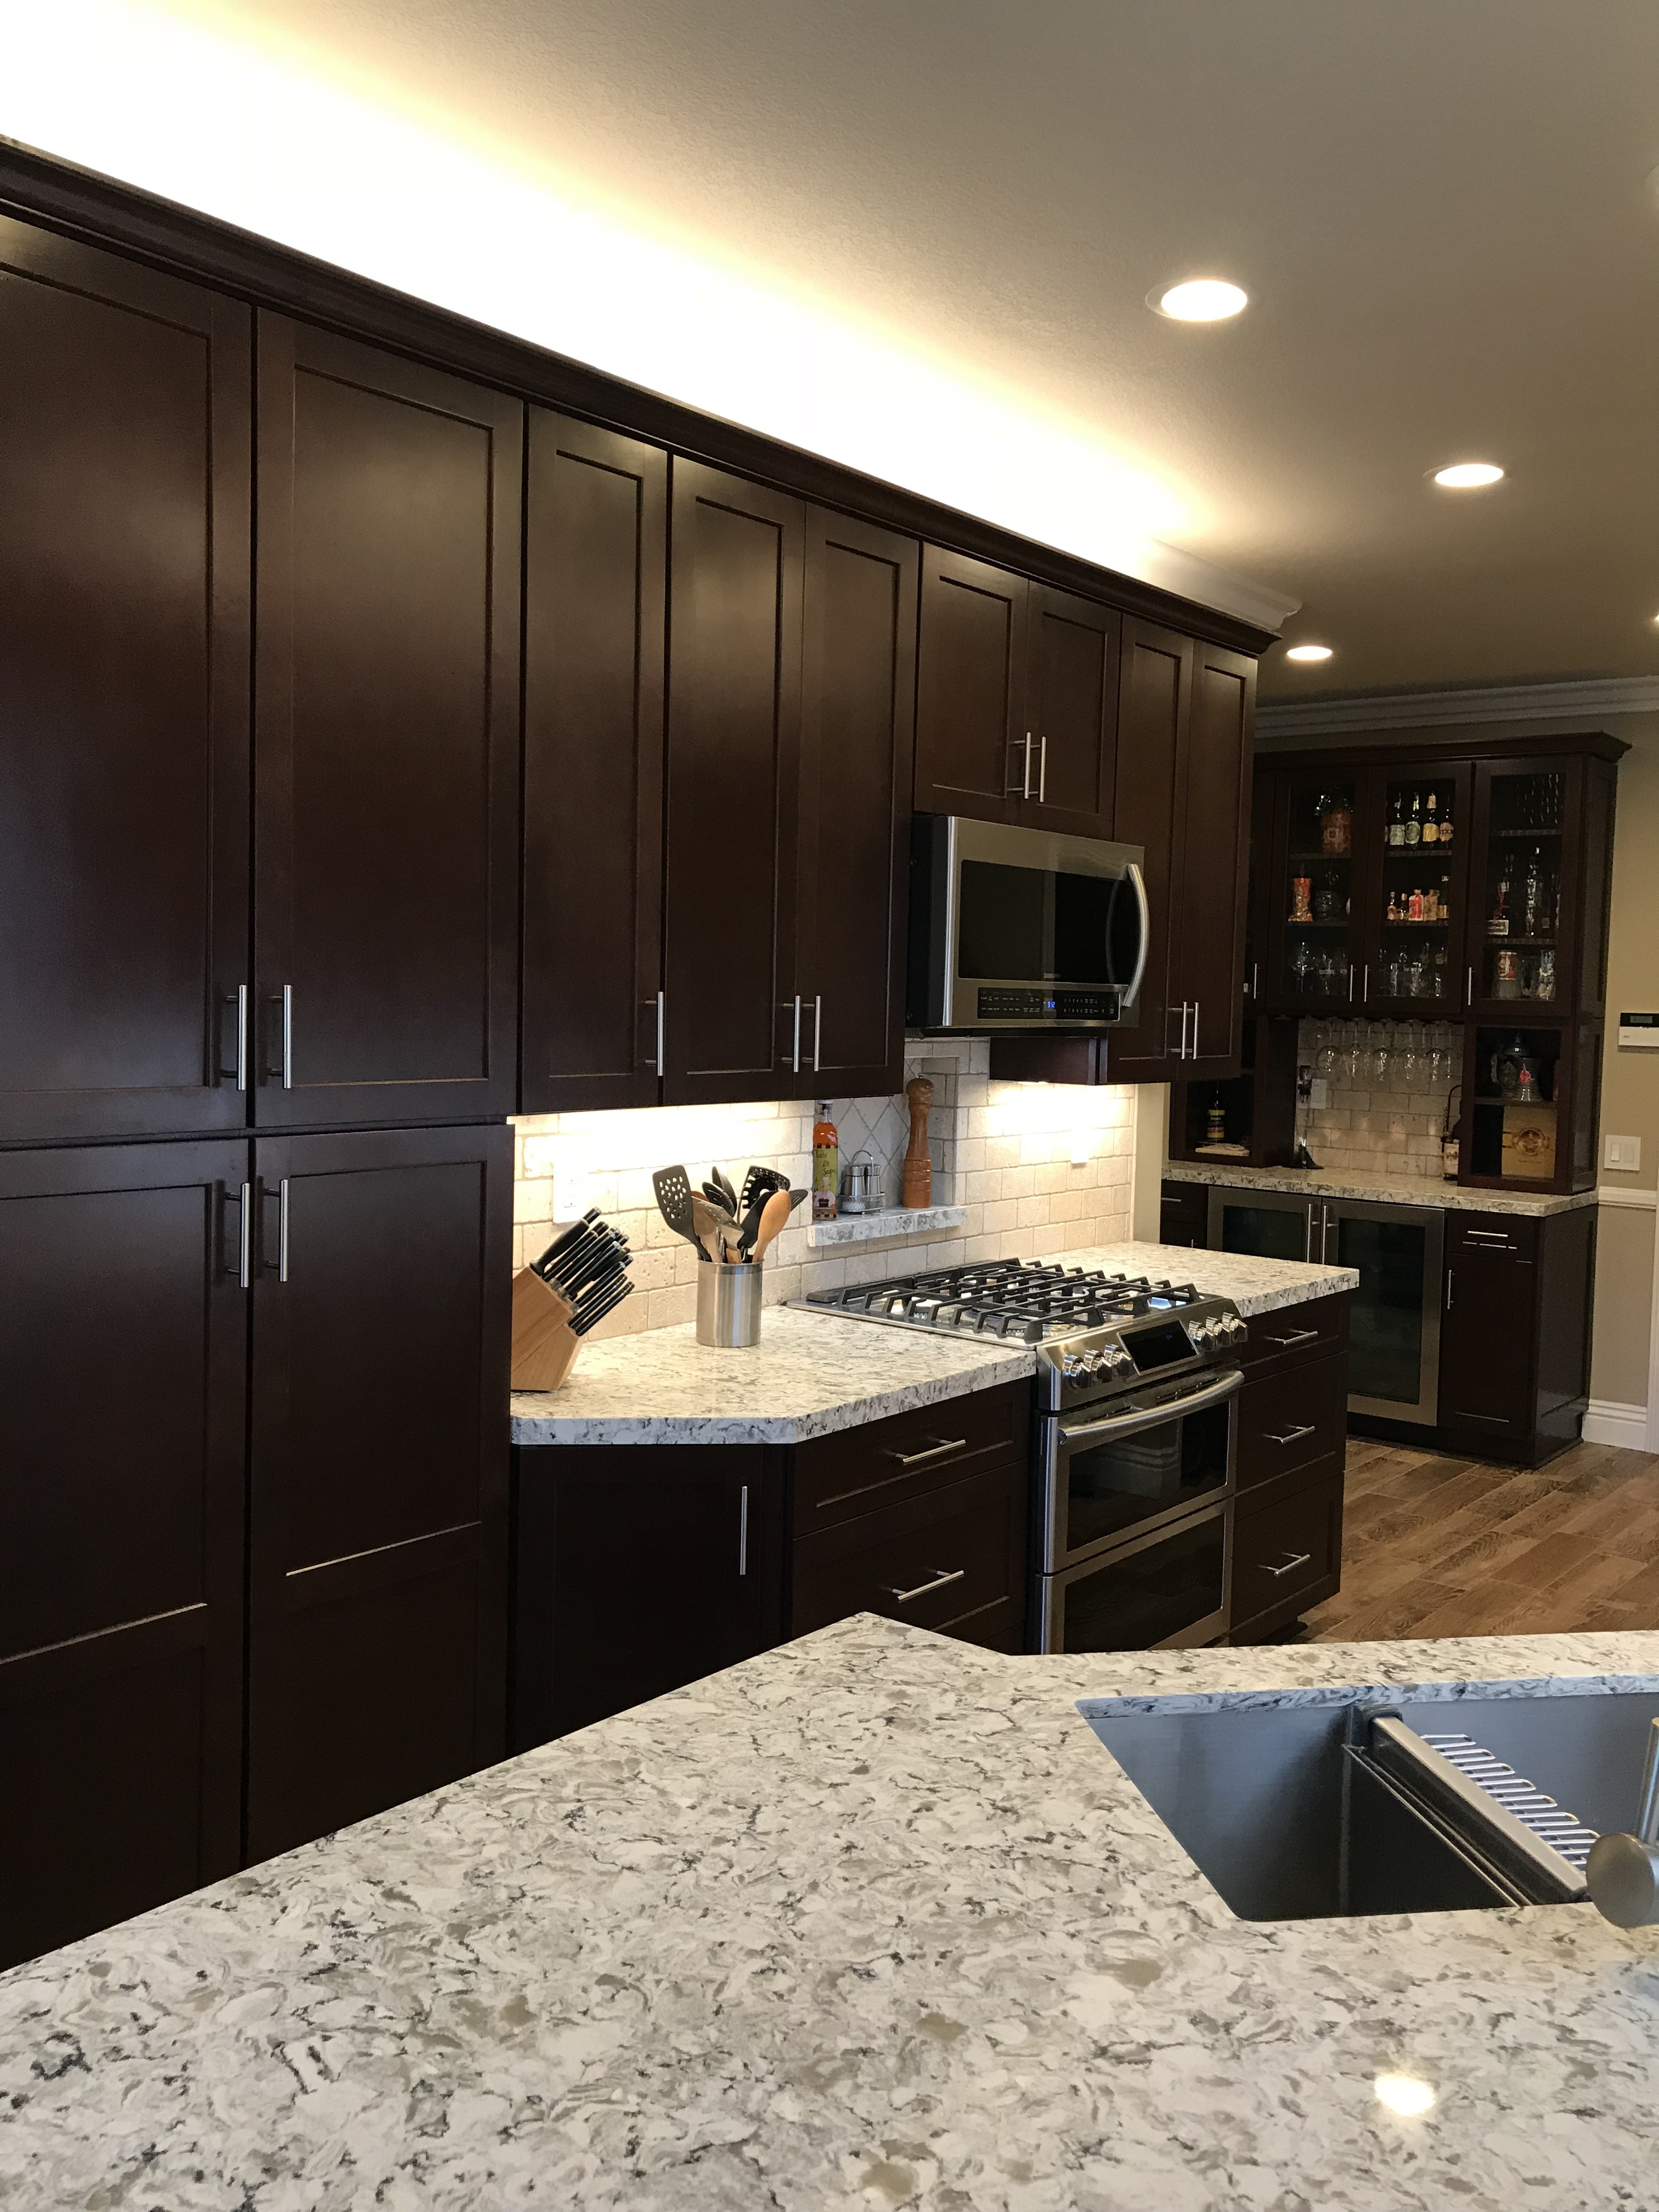 Semi Custom Kitchen Cabinets: Orange County Kitchen Cabinet Contractor For Semi-Custom